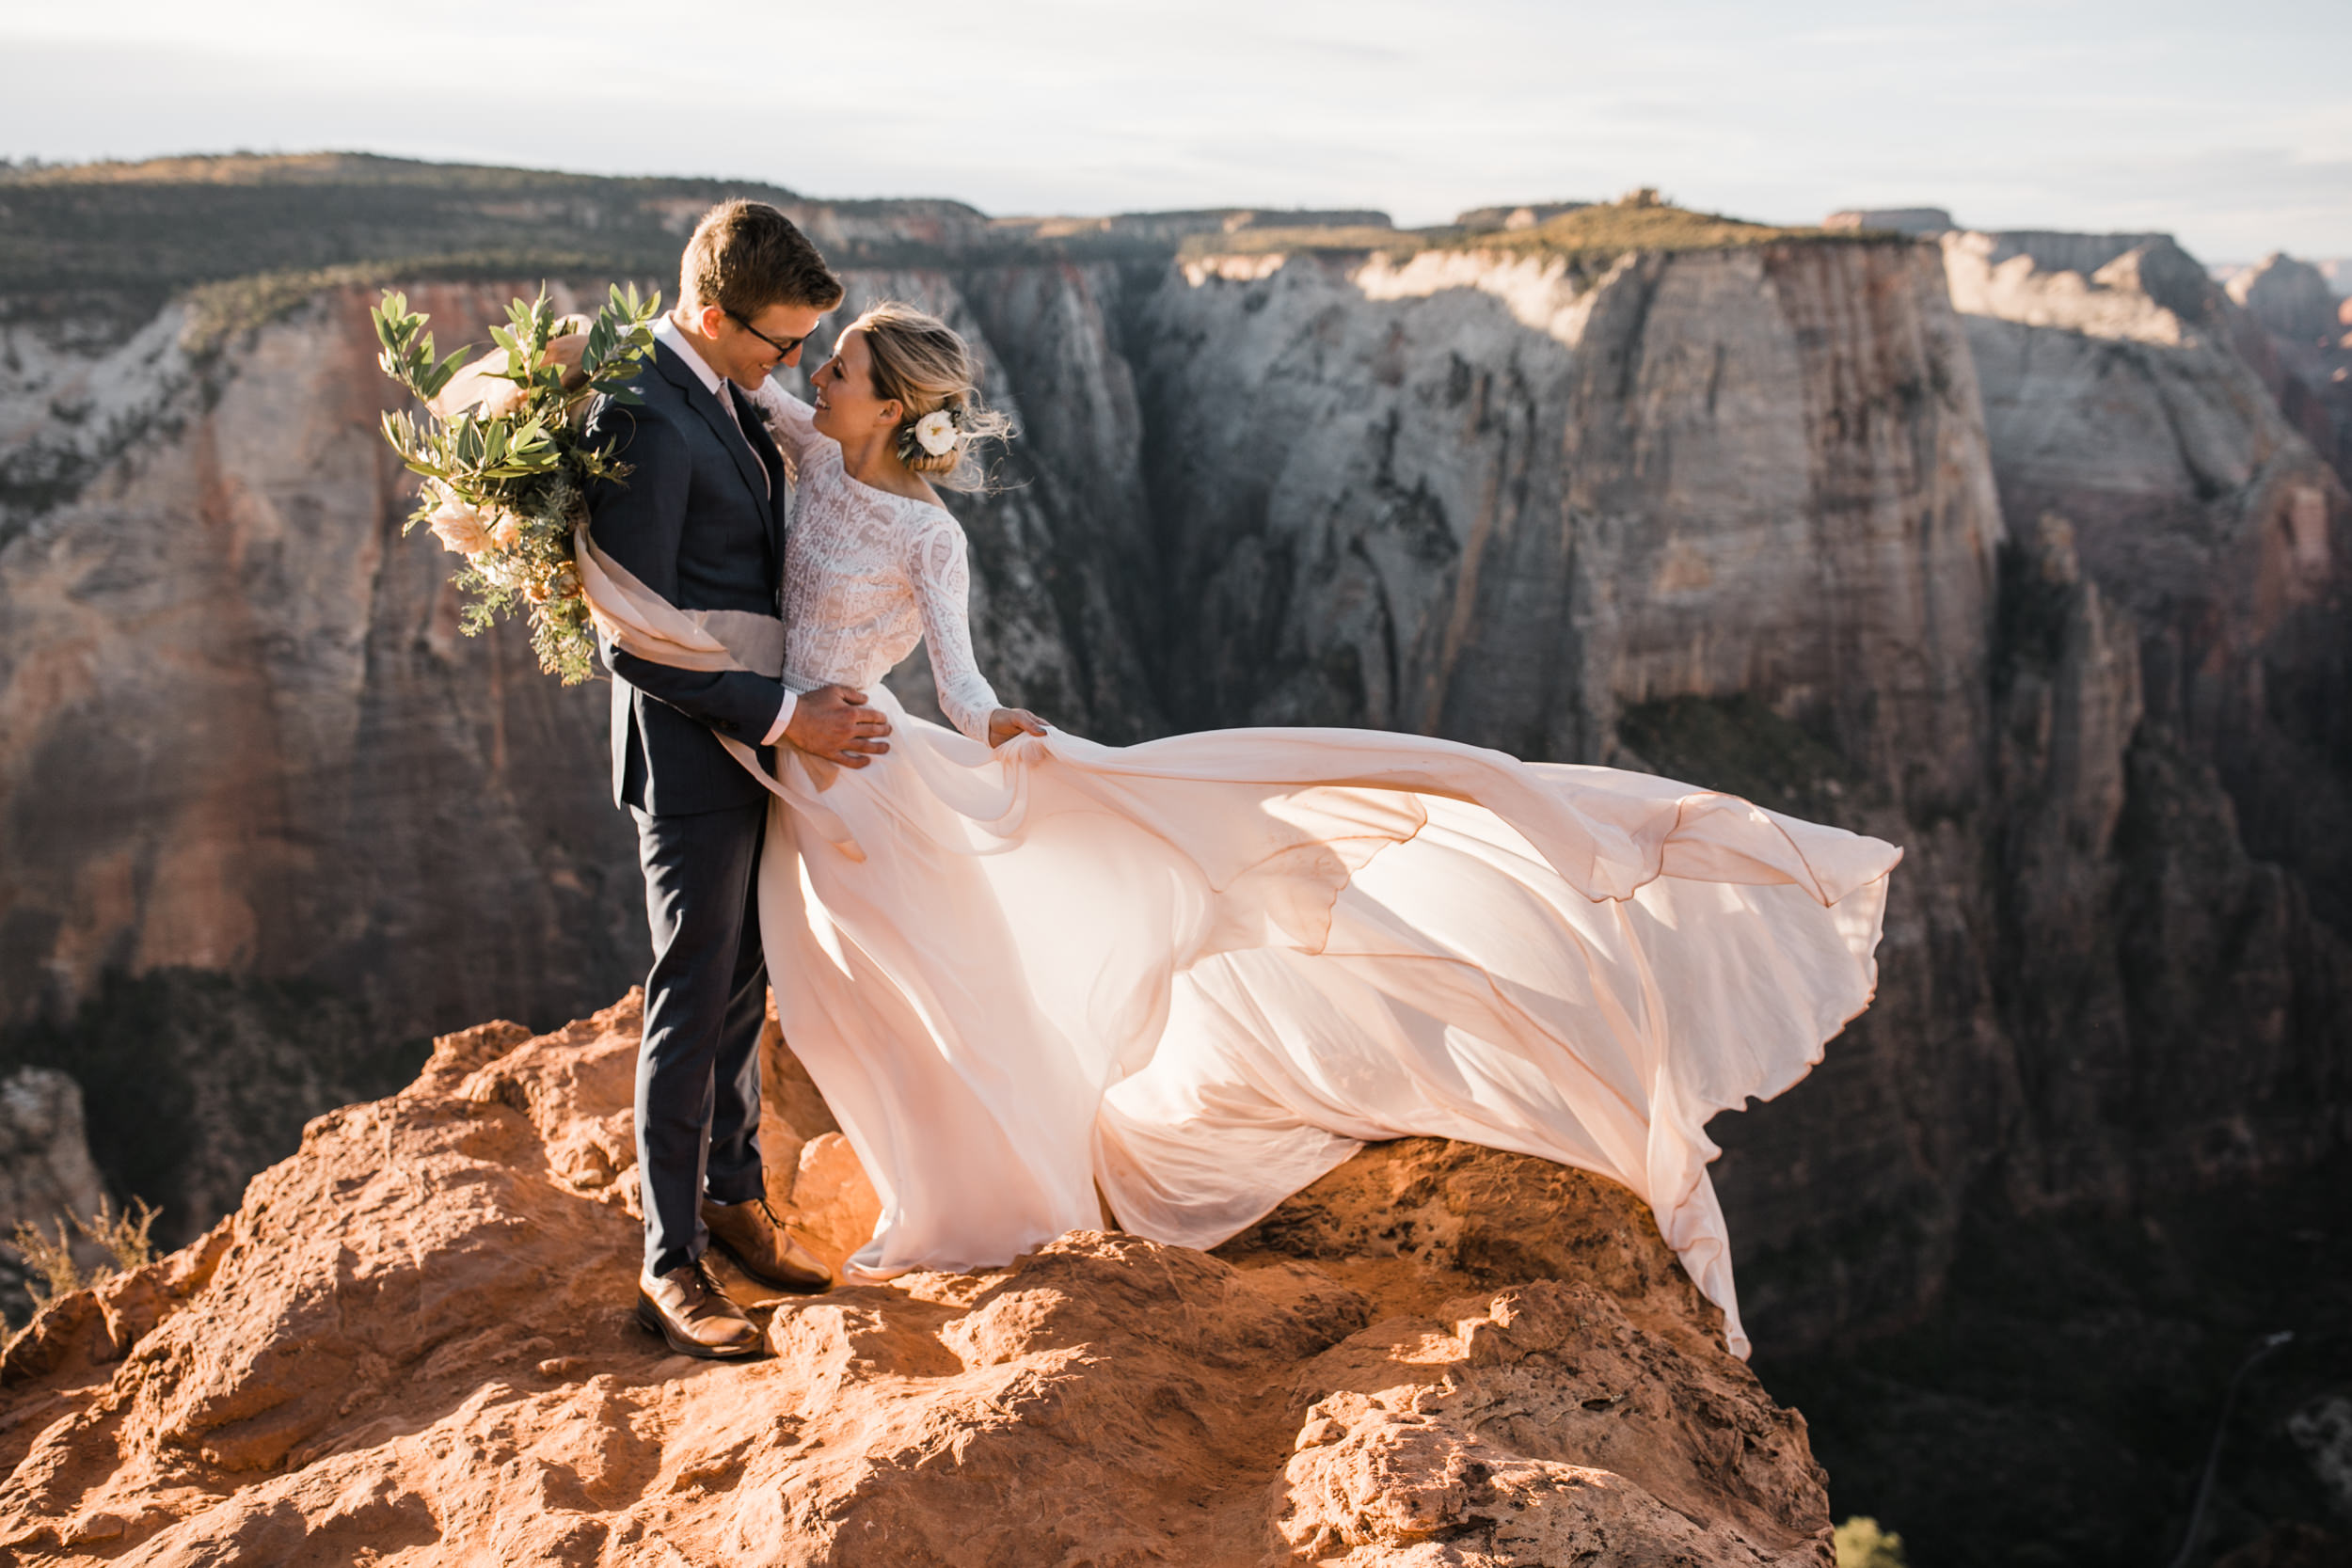 erin + marshall's sunrise elopement ceremony overlooking zion national park | hiking wedding | utah elopement photographer | the hearnes adventure photography